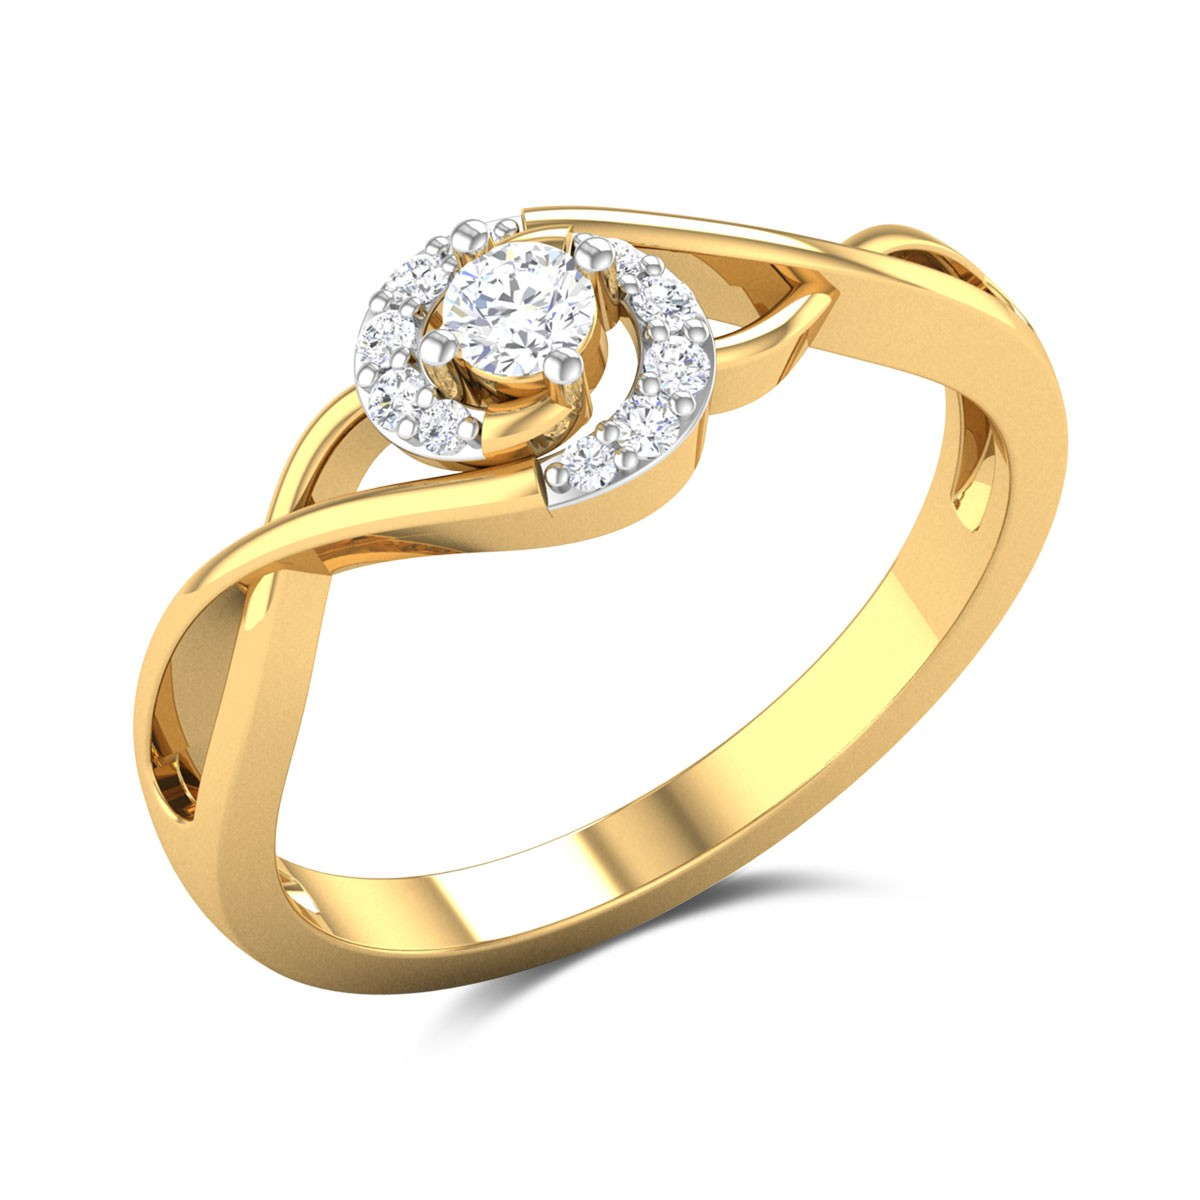 Enat Diamond Ring